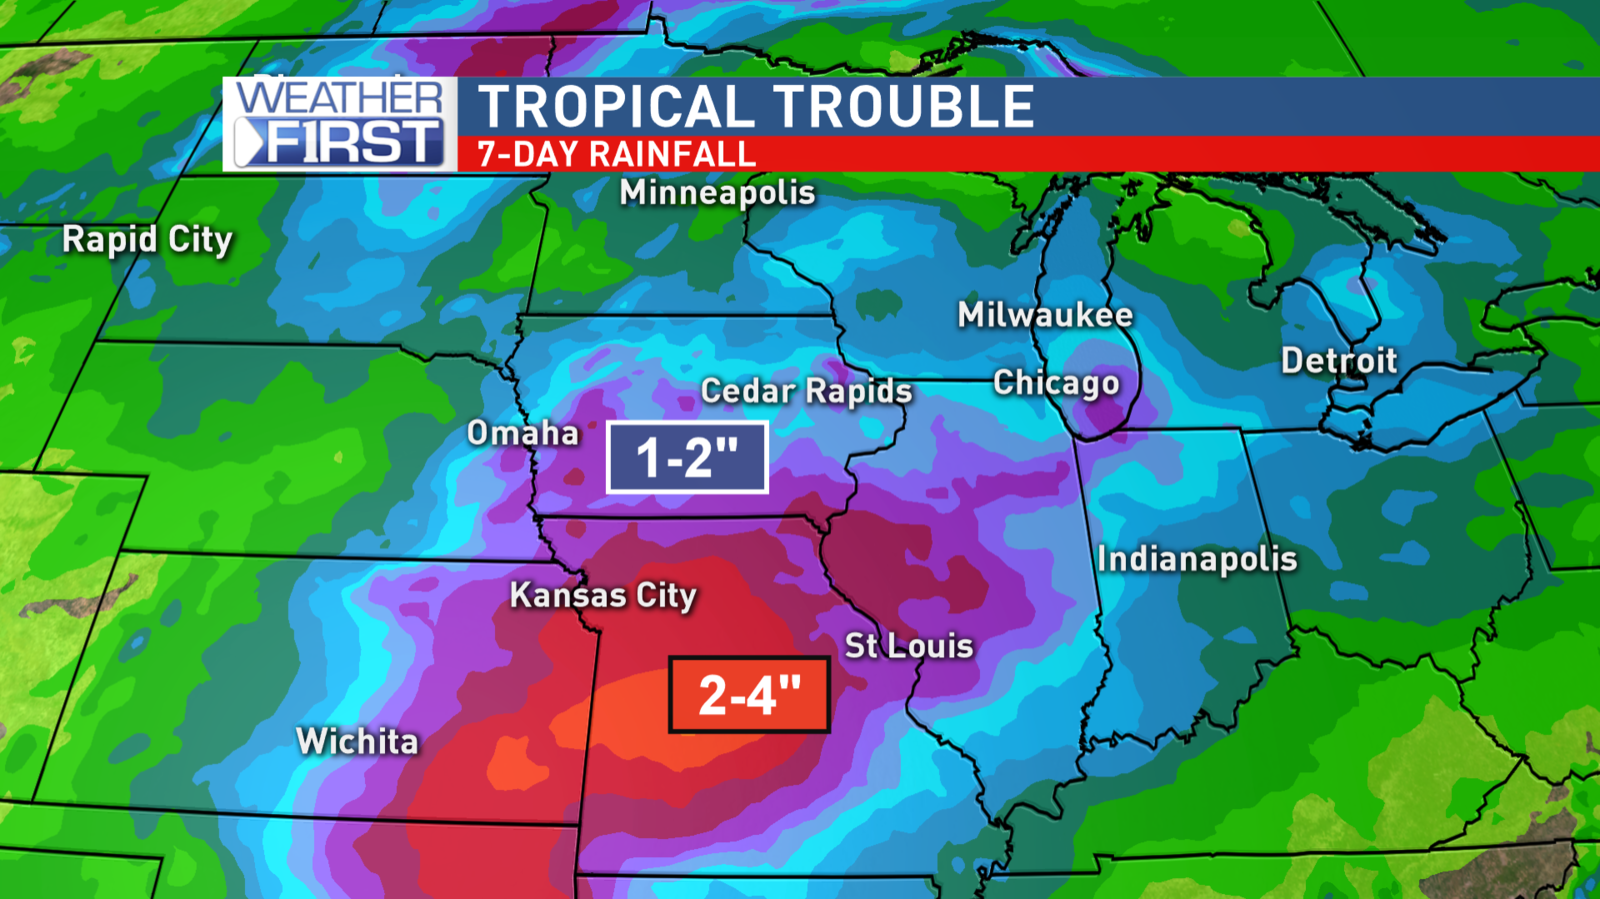 Heavy rainfall possible over the next several days.